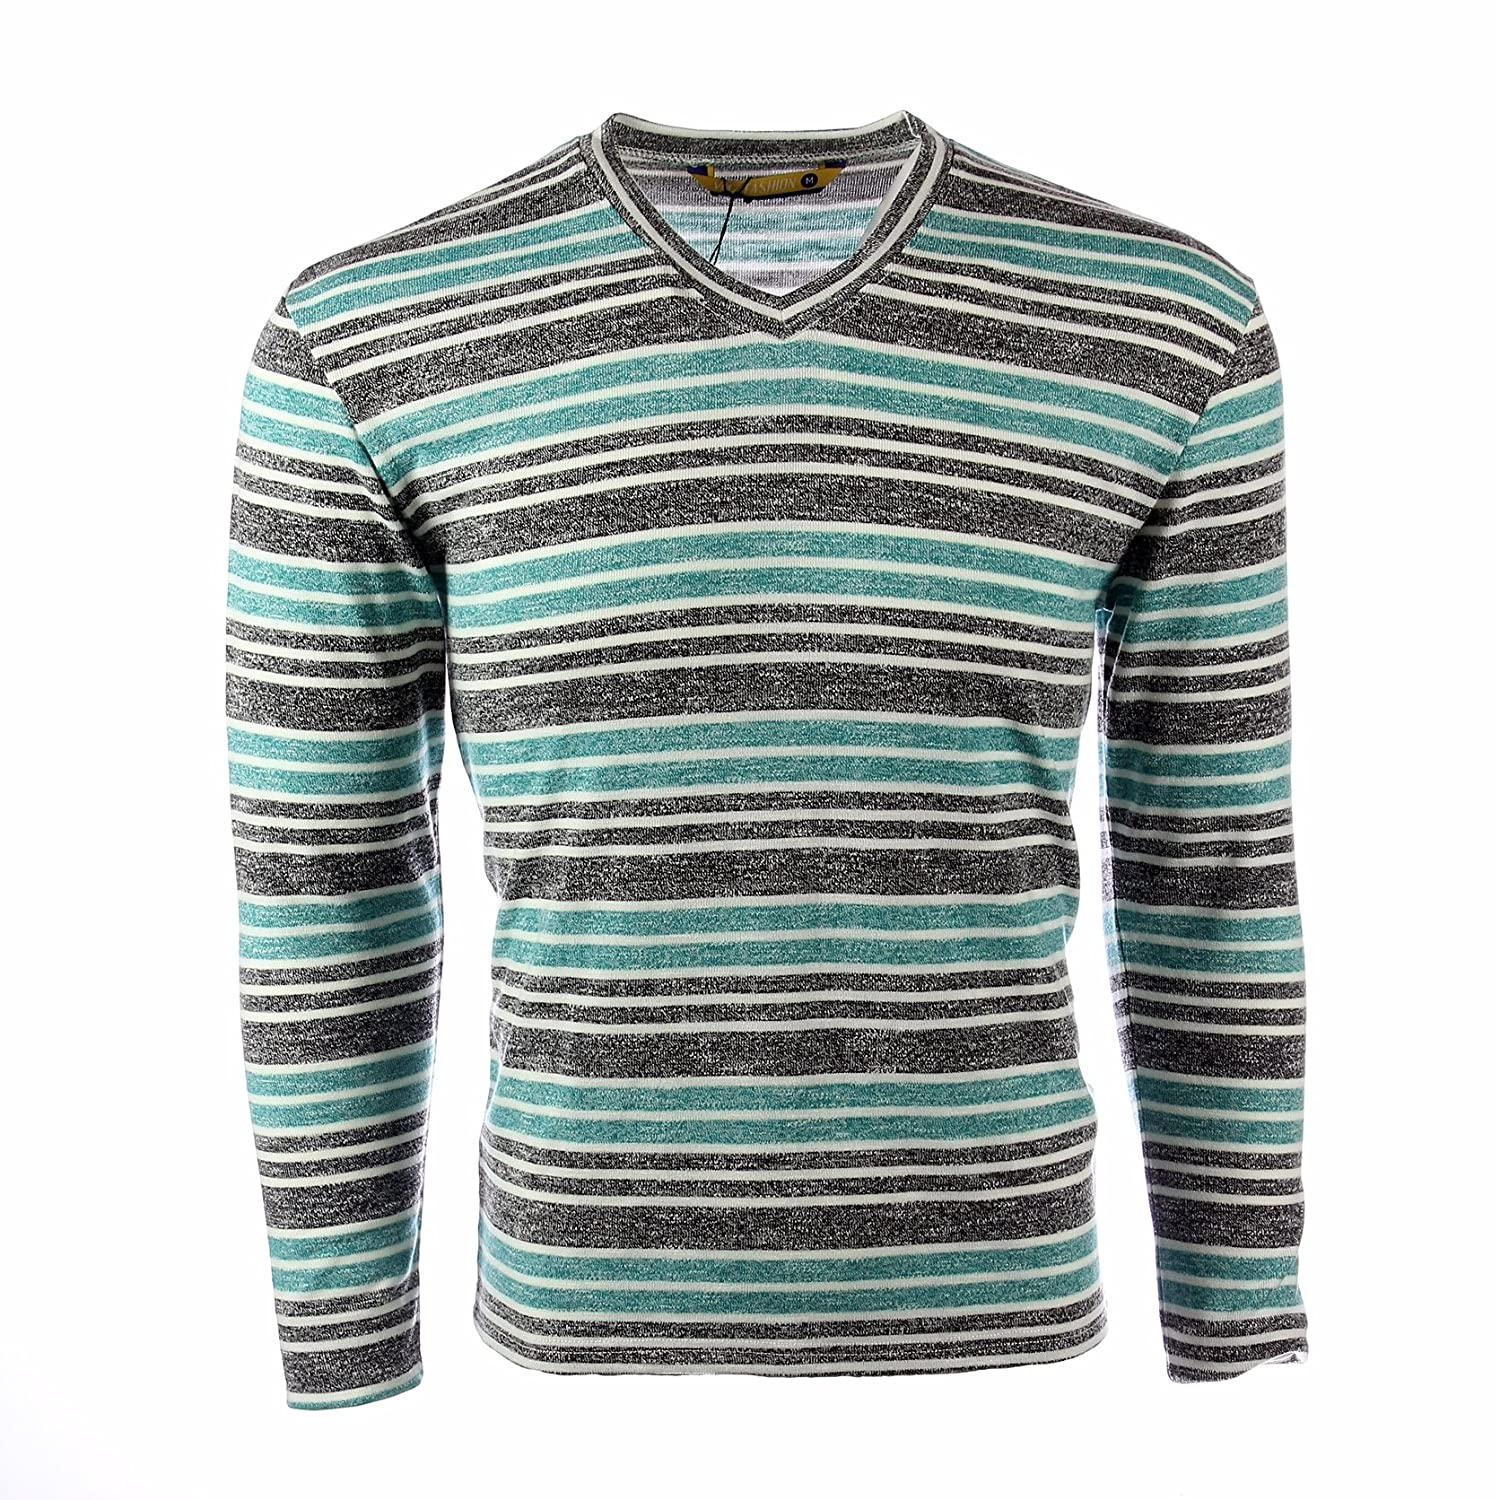 Vmz Fashion Mens Sweatshirt V Neck Striped Slim Fit Faded